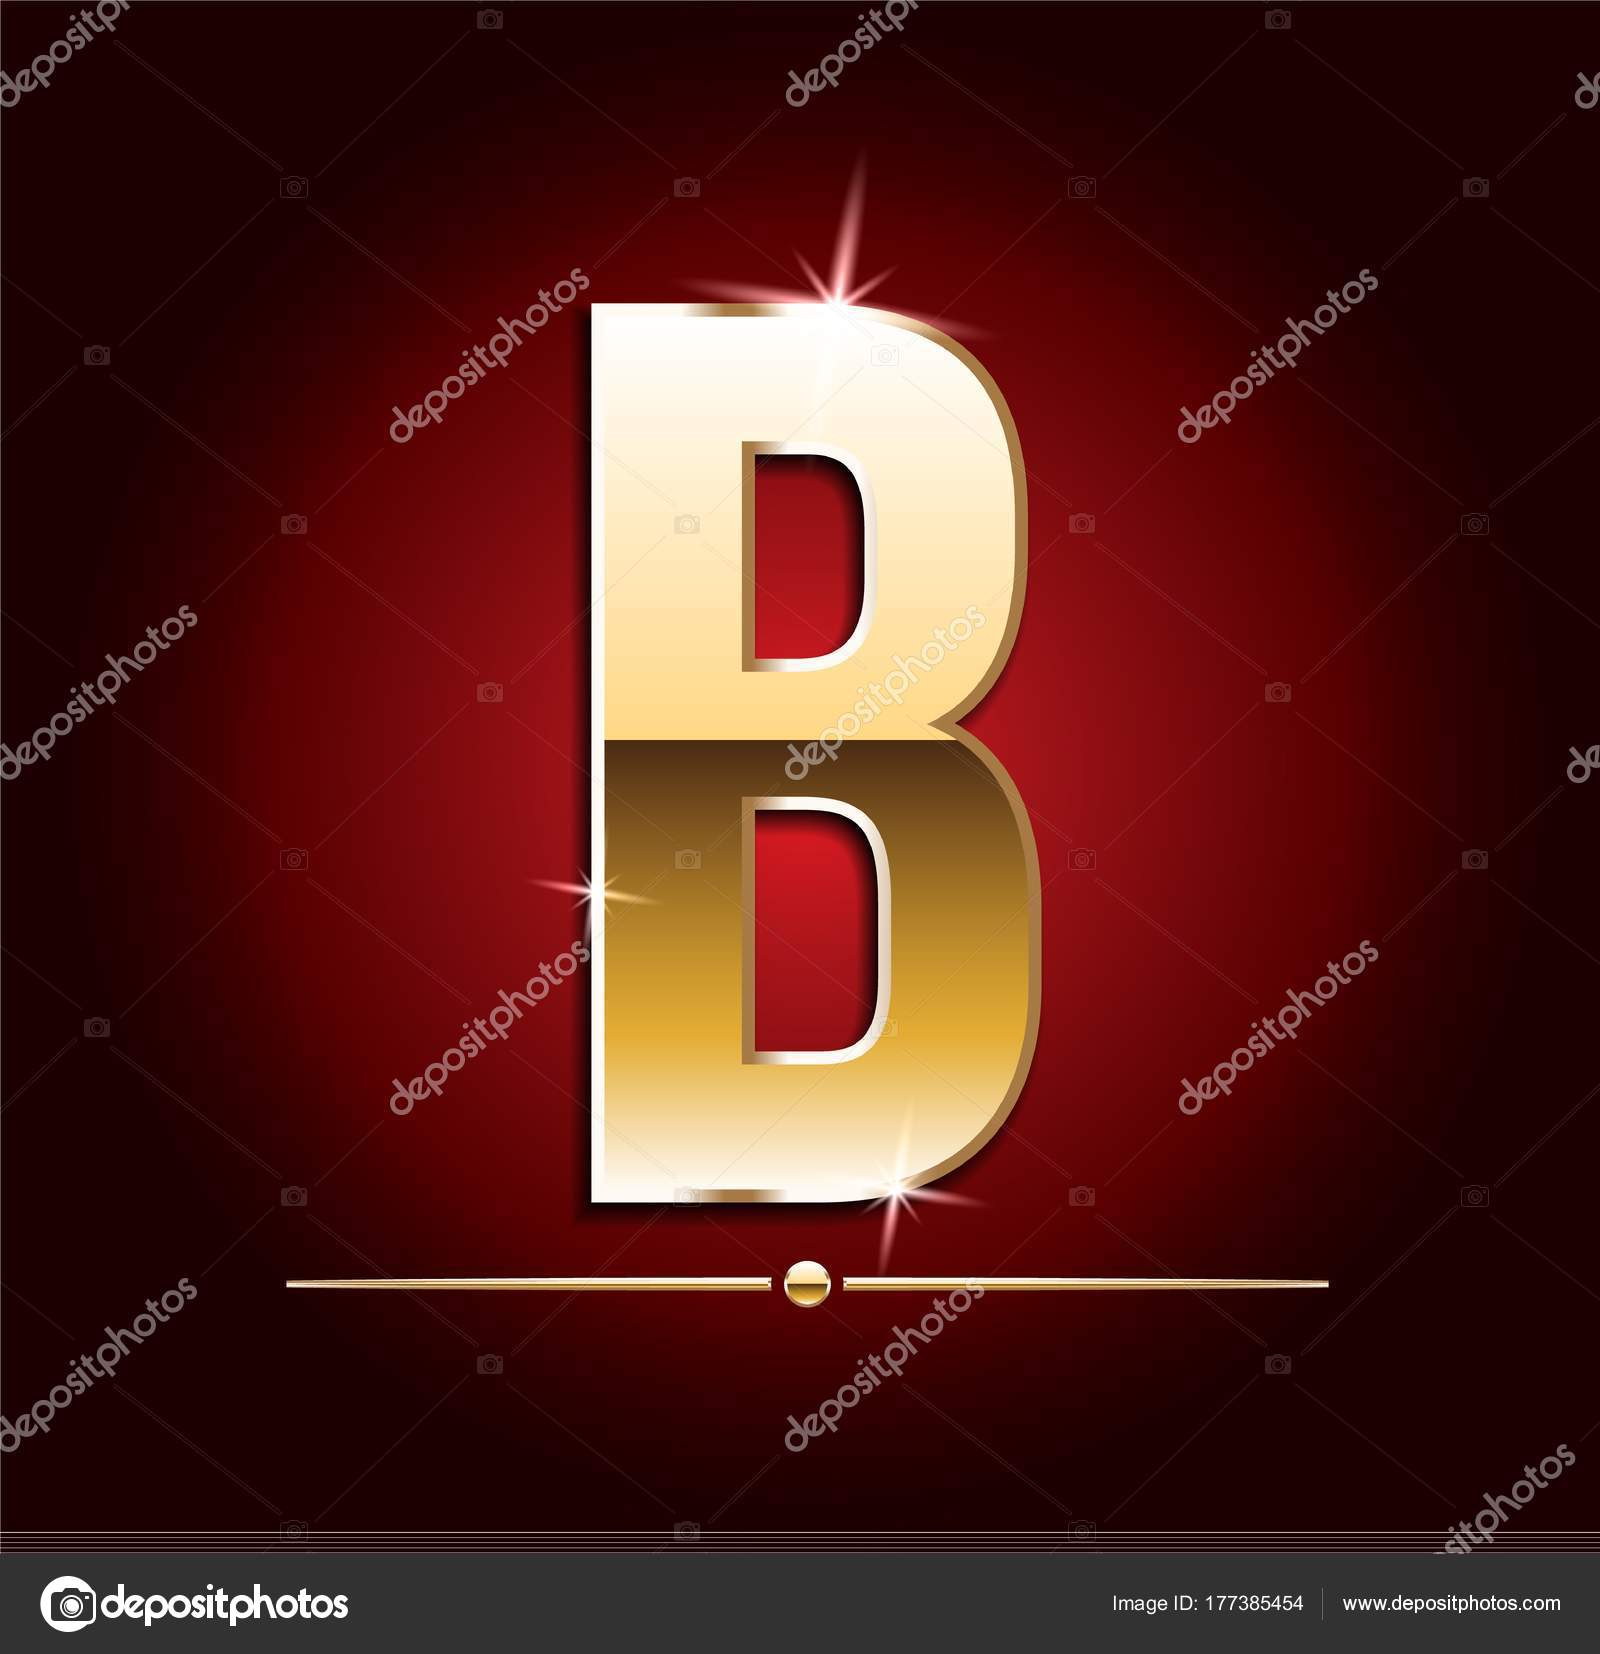 gold icon one hundred quality depositphotos arabica illustration vector coffee percent stock badge premium